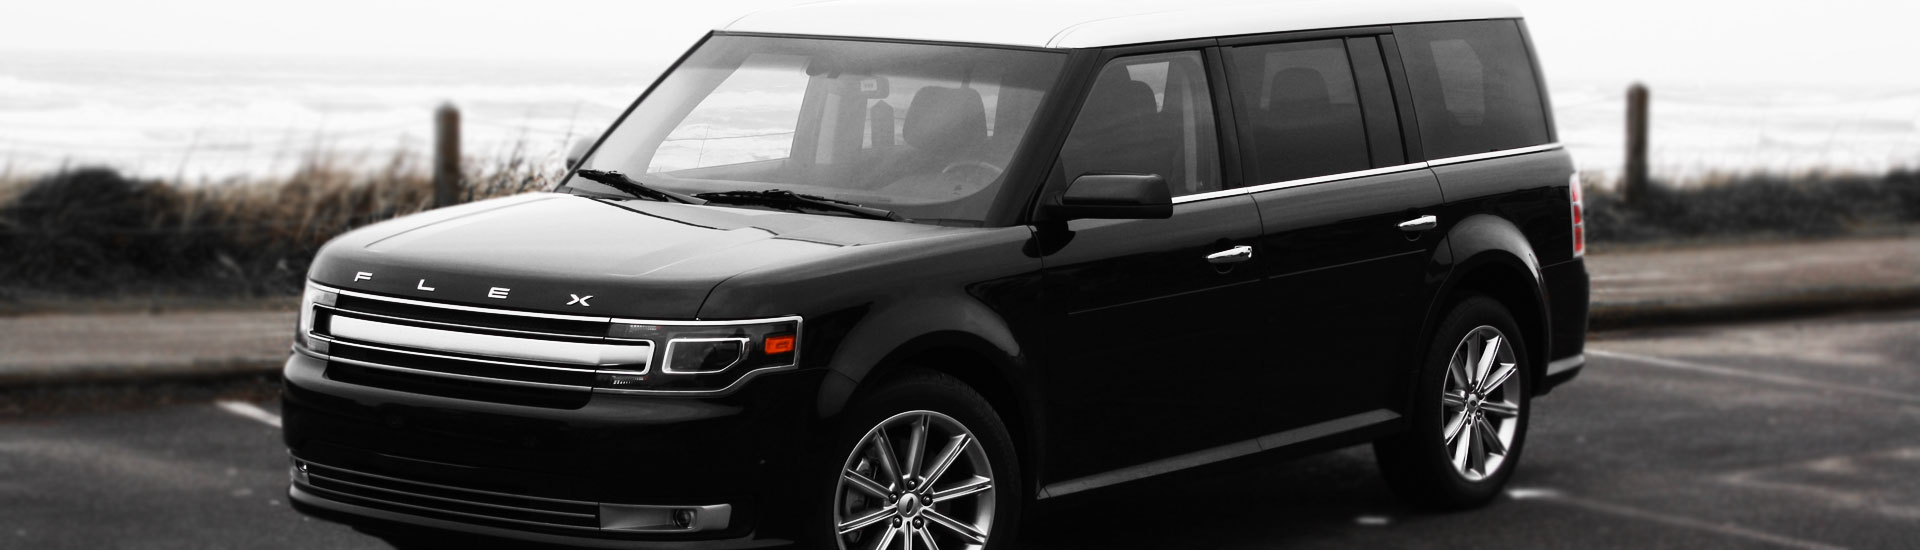 Ford Flex Window Tint